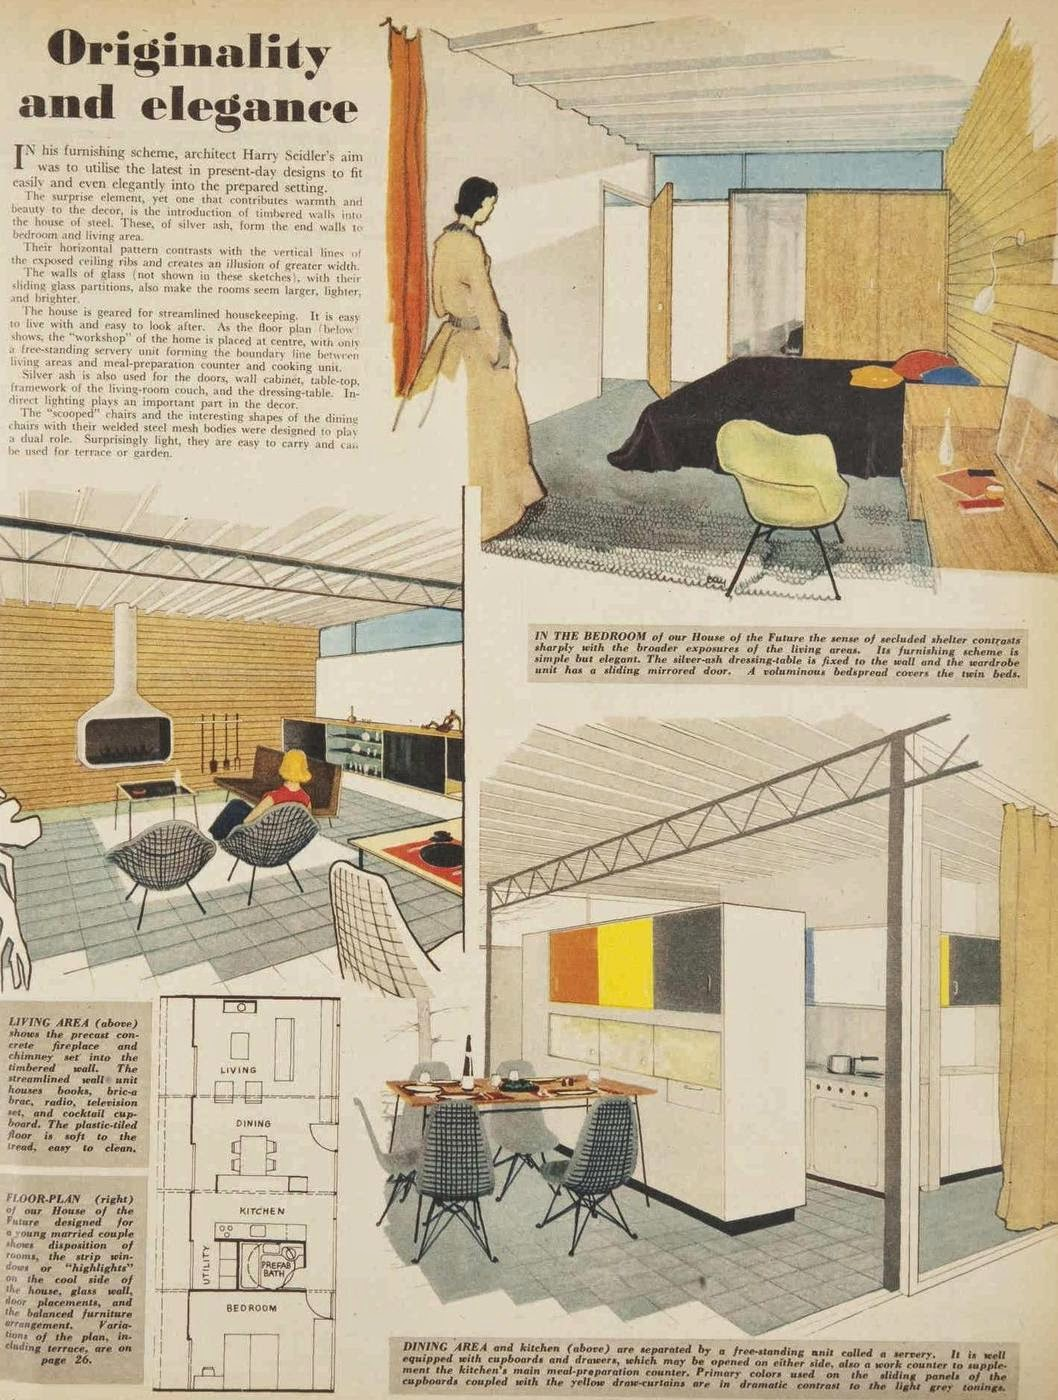 Interior drawings for Siedler's 'house of the future'